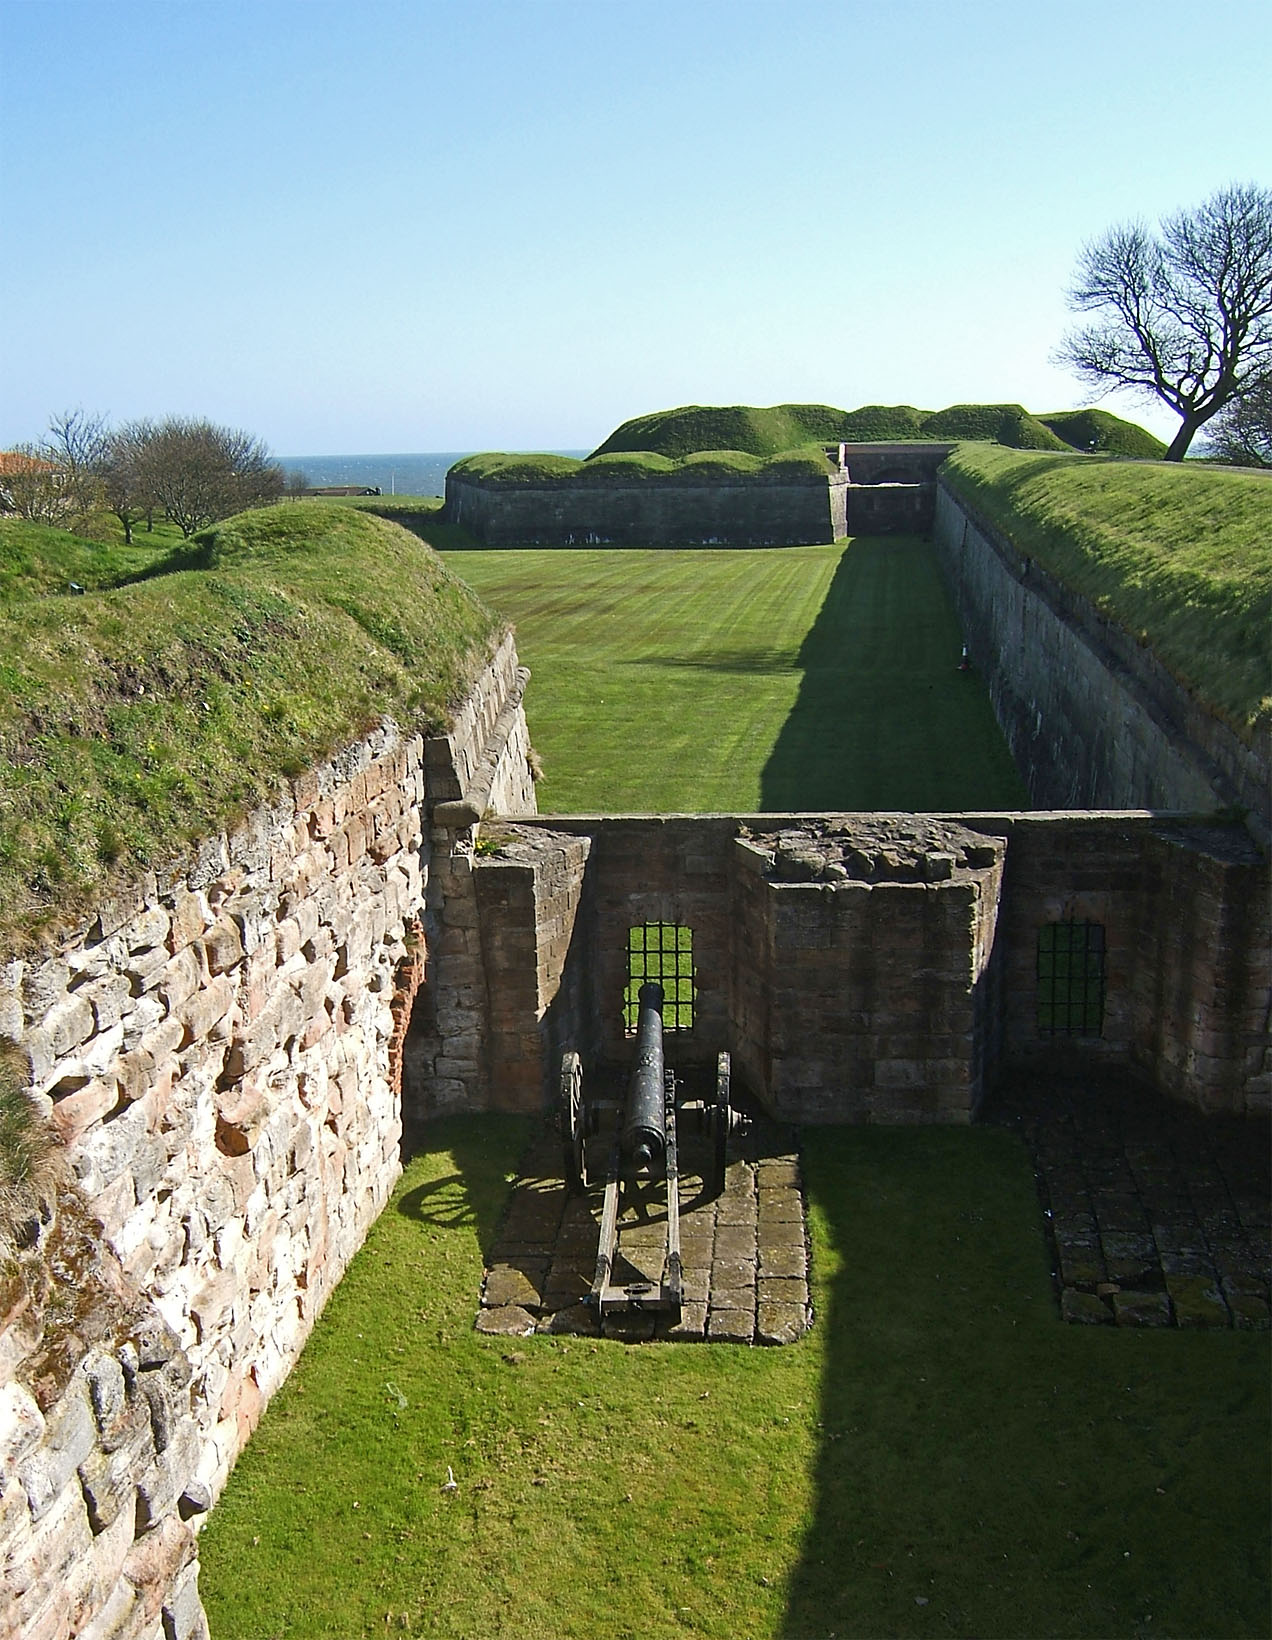 berwick upon tweed asian singles Discover why berwick was on the frontline in wars and battles  berwick-upon-tweed,  intact fortifications dating back to the tudor period berwick is one of the.